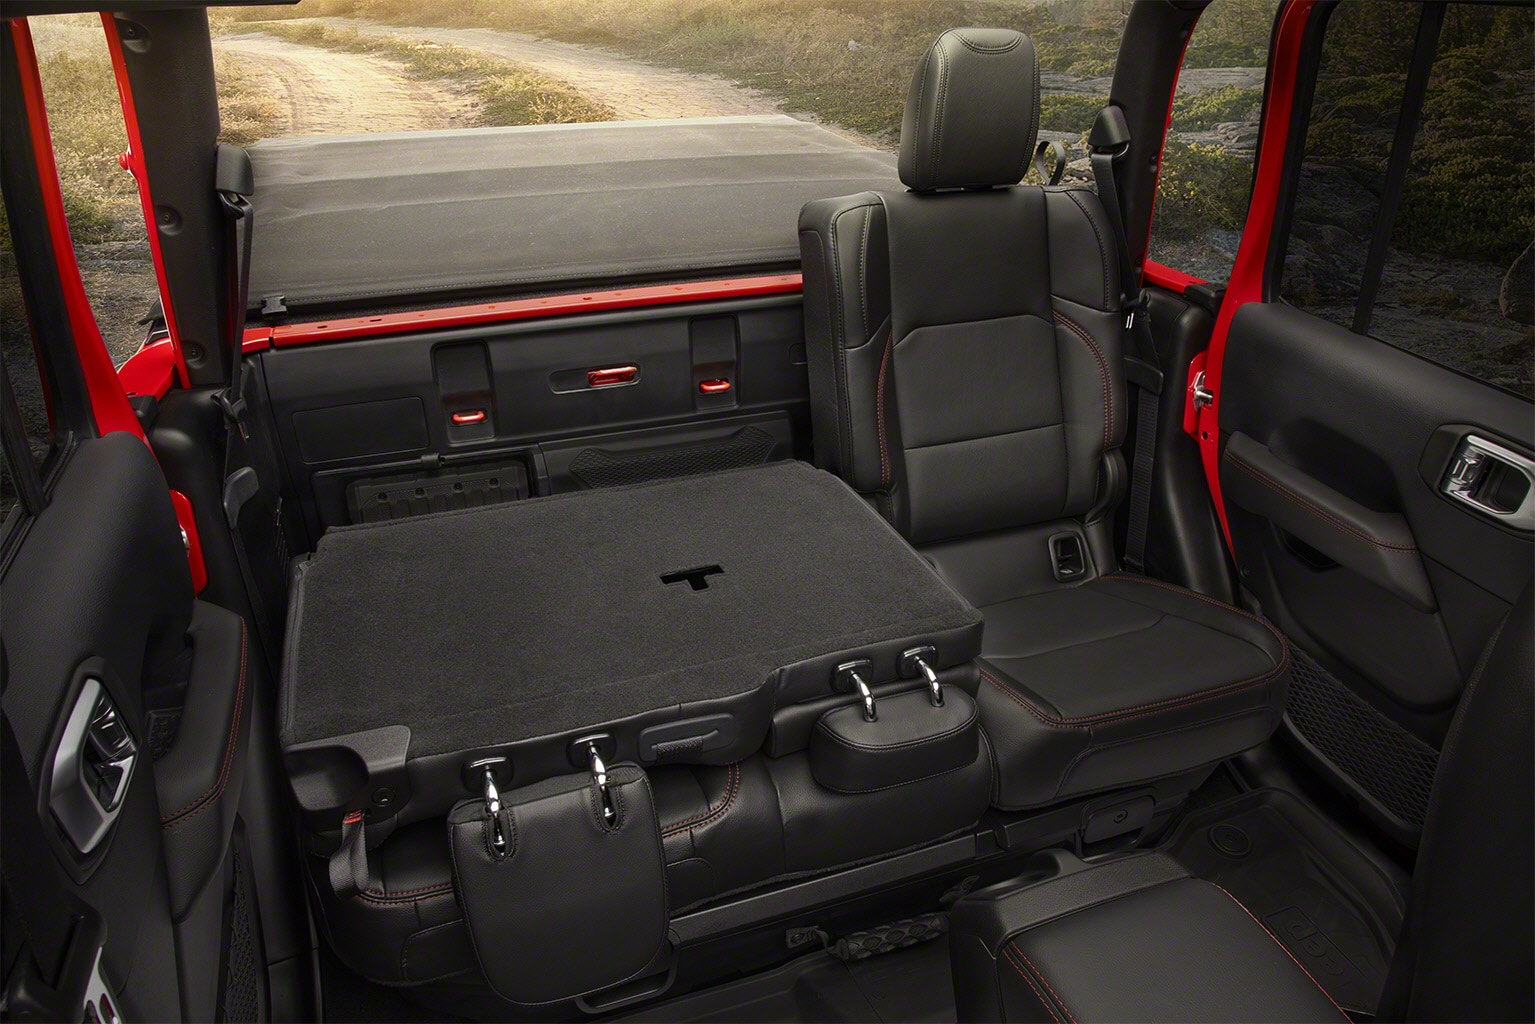 2020 Jeep Gladiator Pickup Arrives: Here Are the Official ...